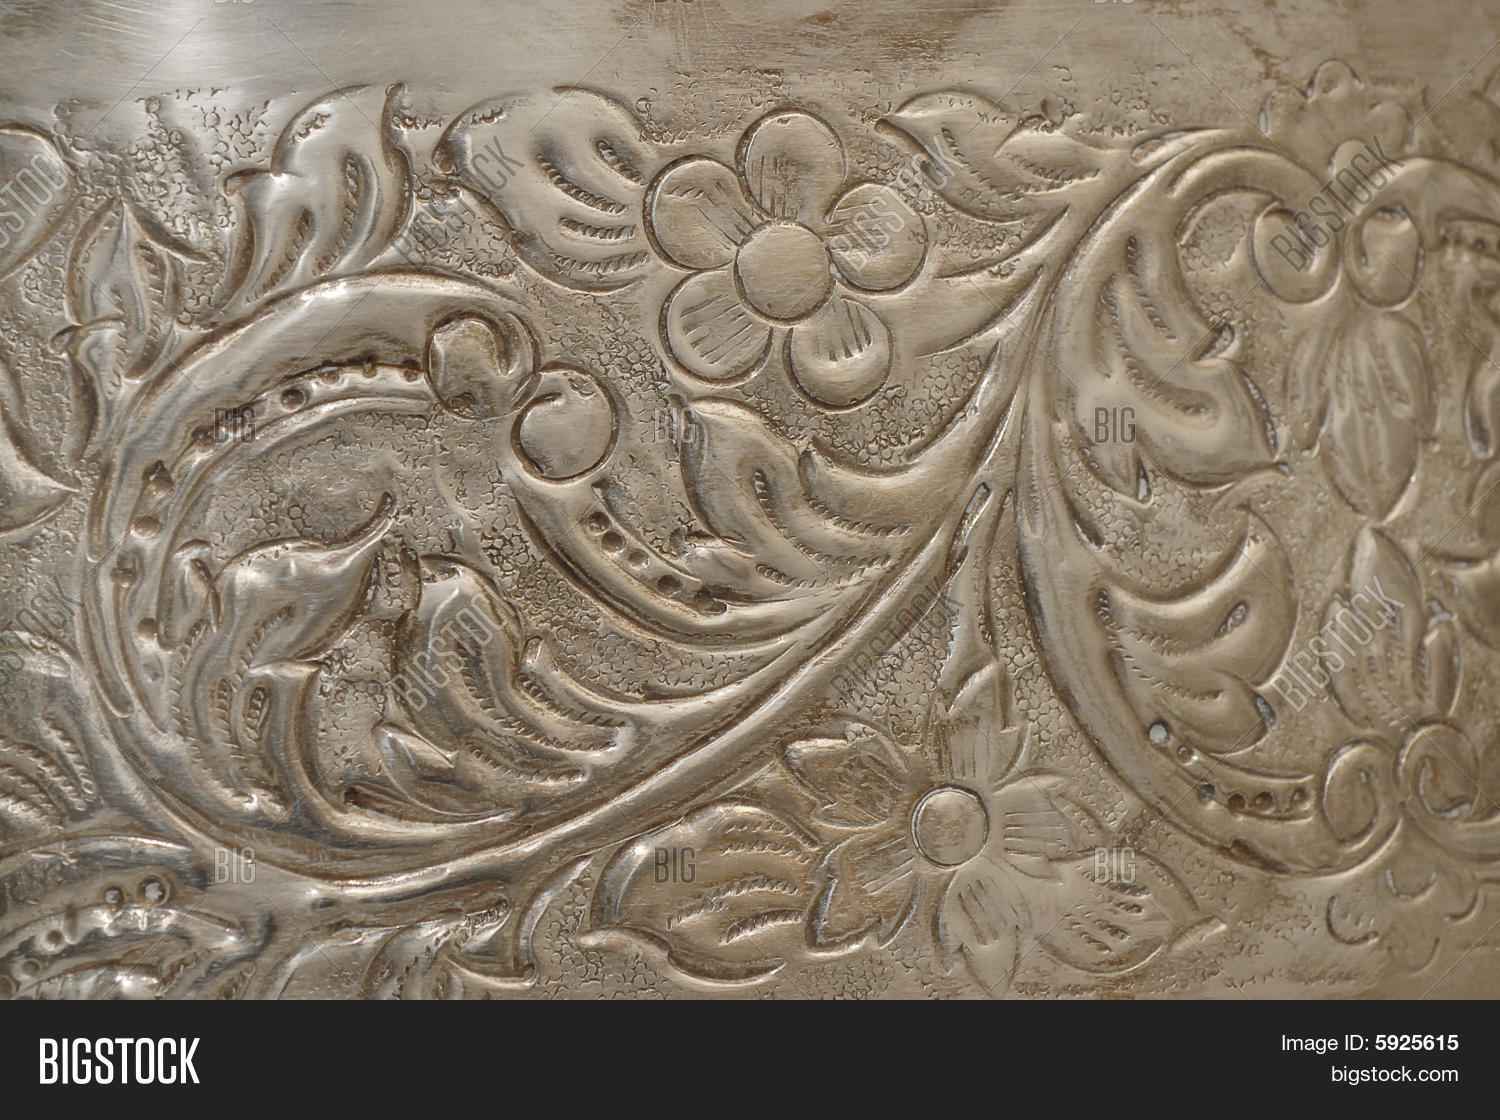 Metal relief carving on silver image photo bigstock